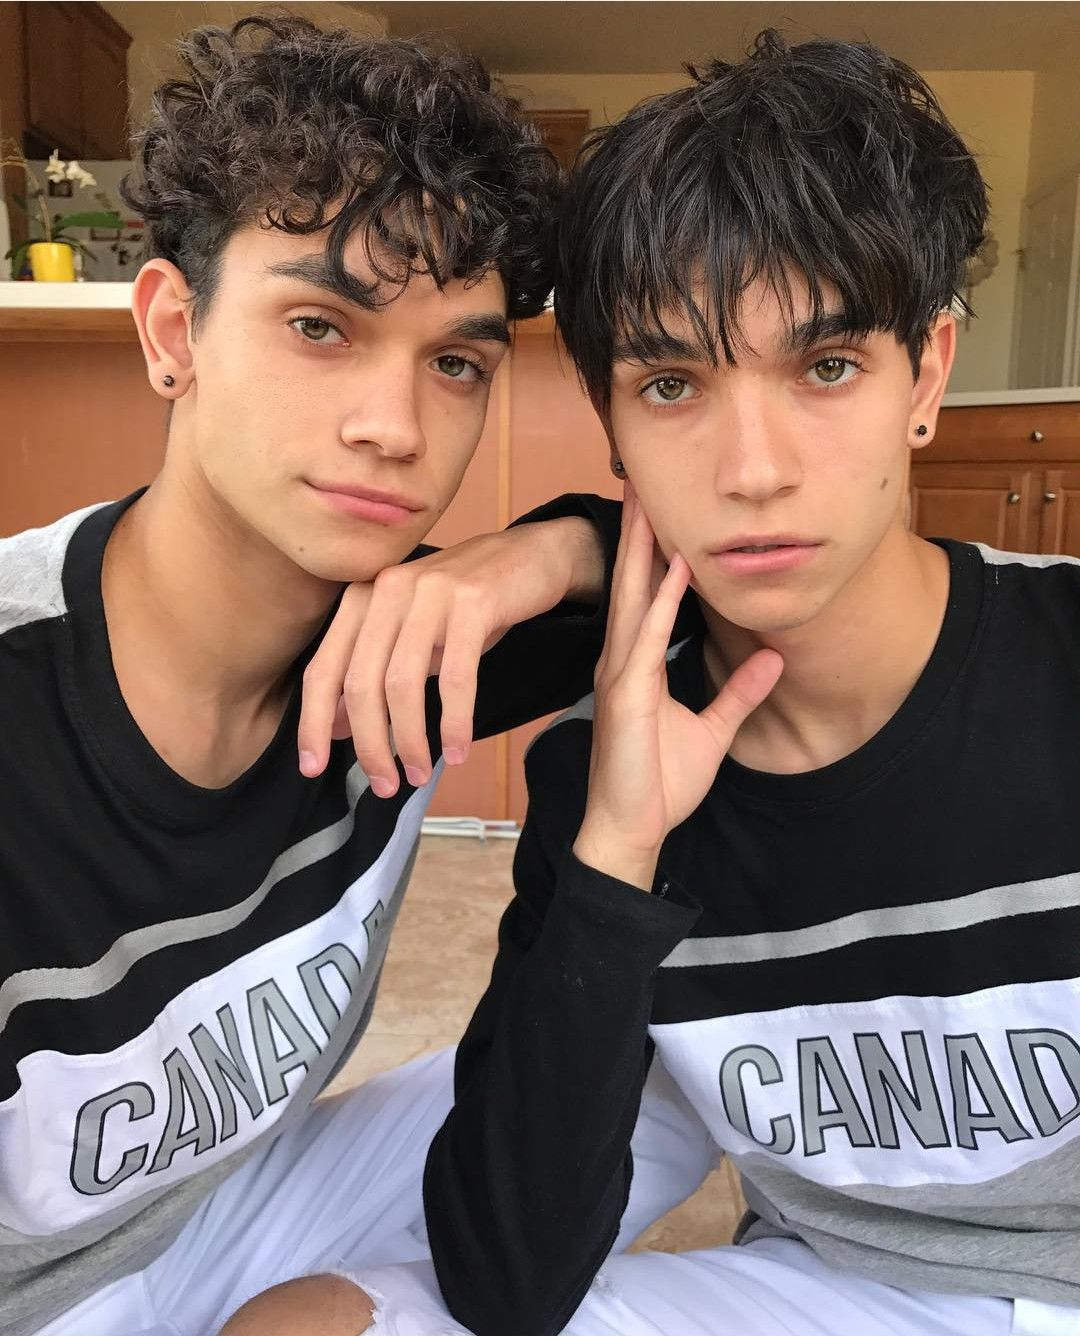 34 Dorbre brothers ideas | marcus and lucas, the dobre twins, marcus dobre